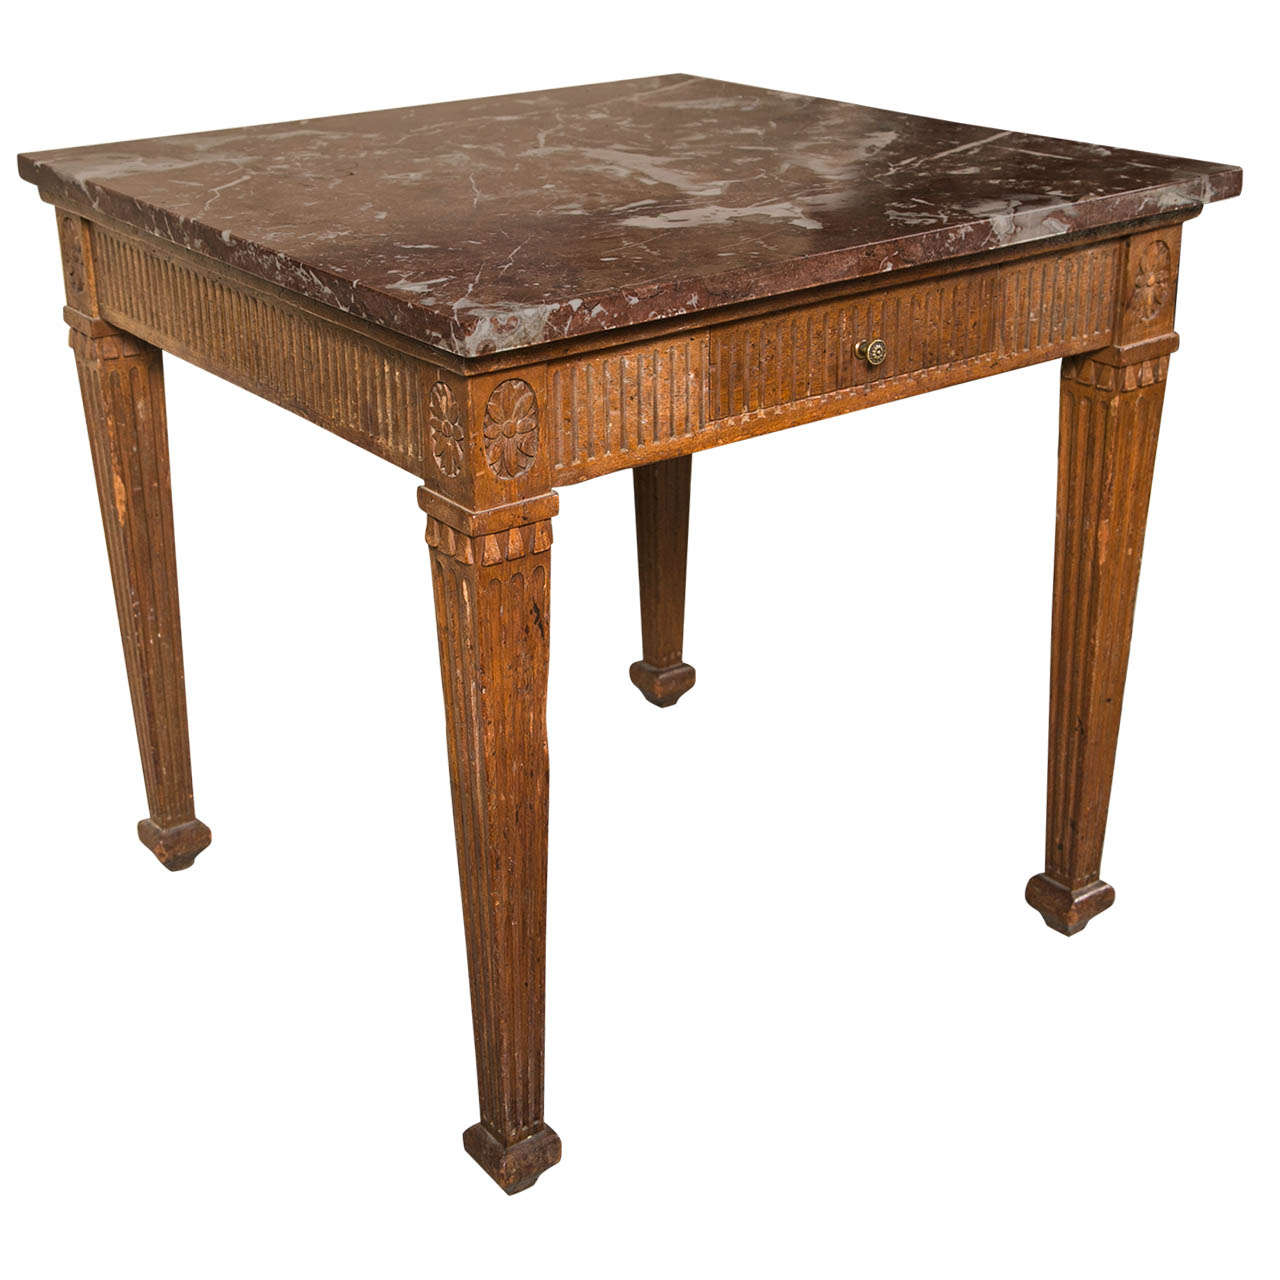 Italian Square fluted Apron and Leg Walnut Table with Siena Marble Top